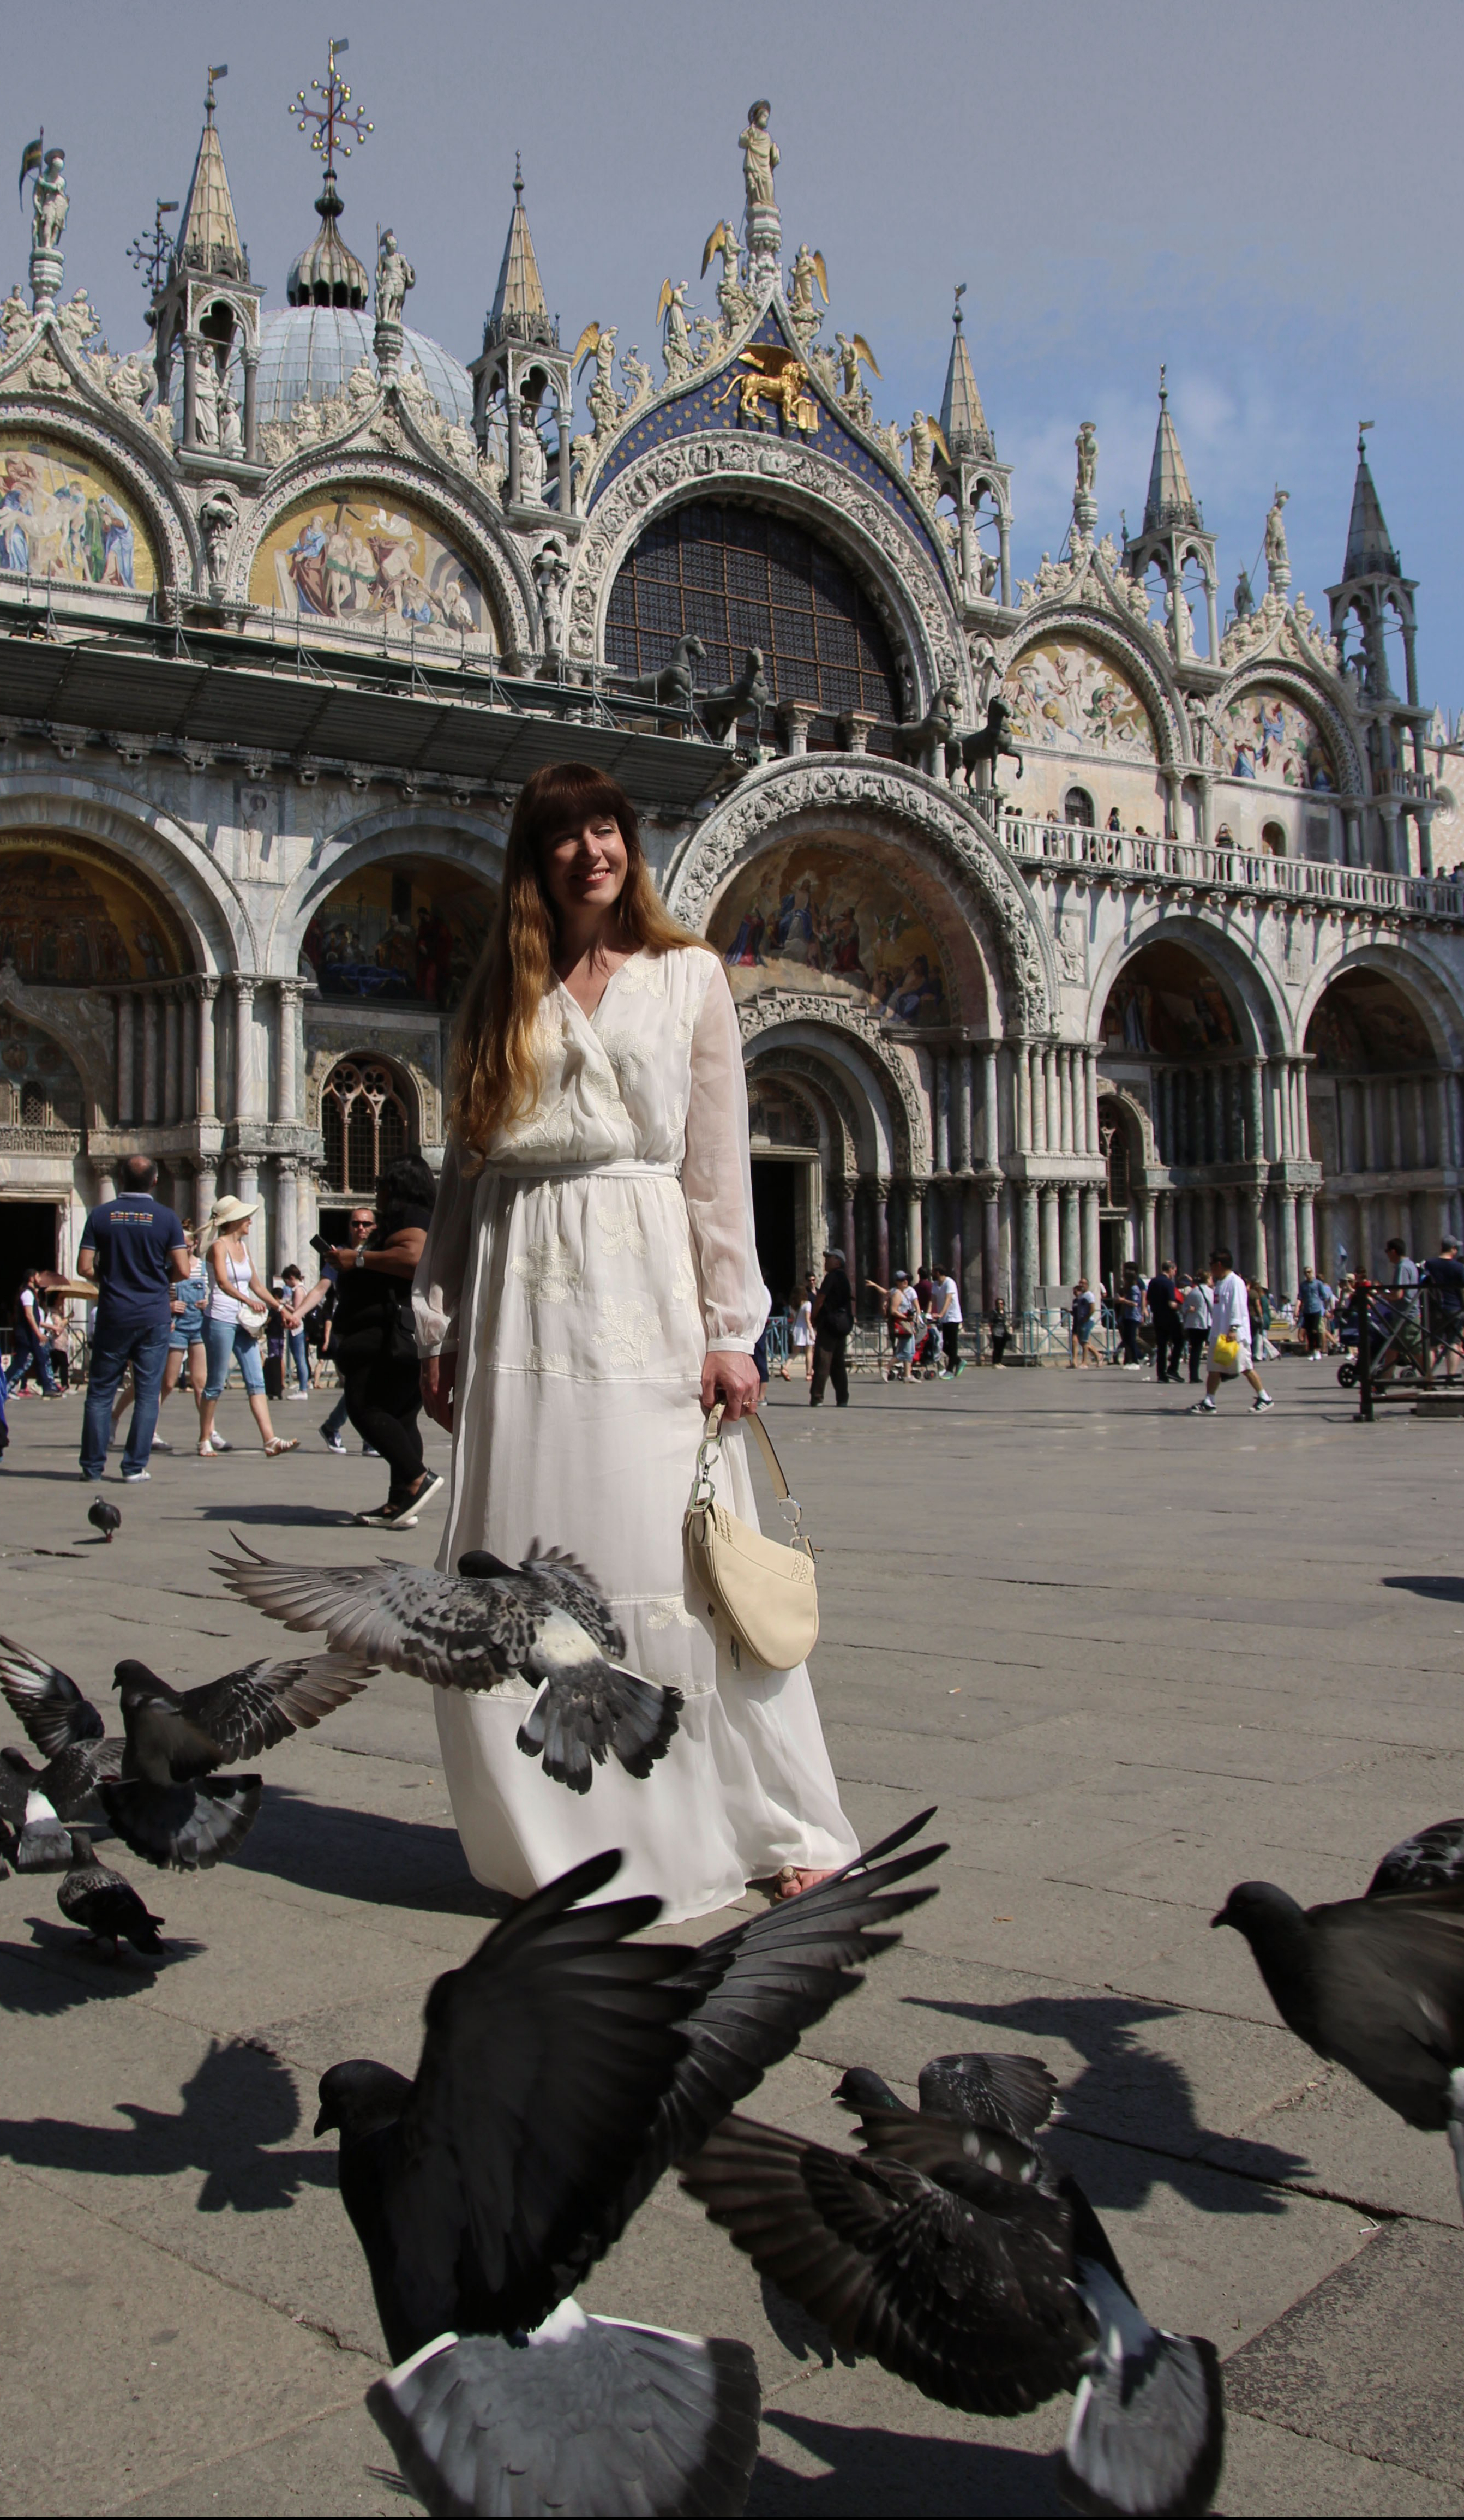 mia_und_ich_blog_venezia _venedig _italy _italien_reise_travel _Mode _fashion_modeblog_travelblog _